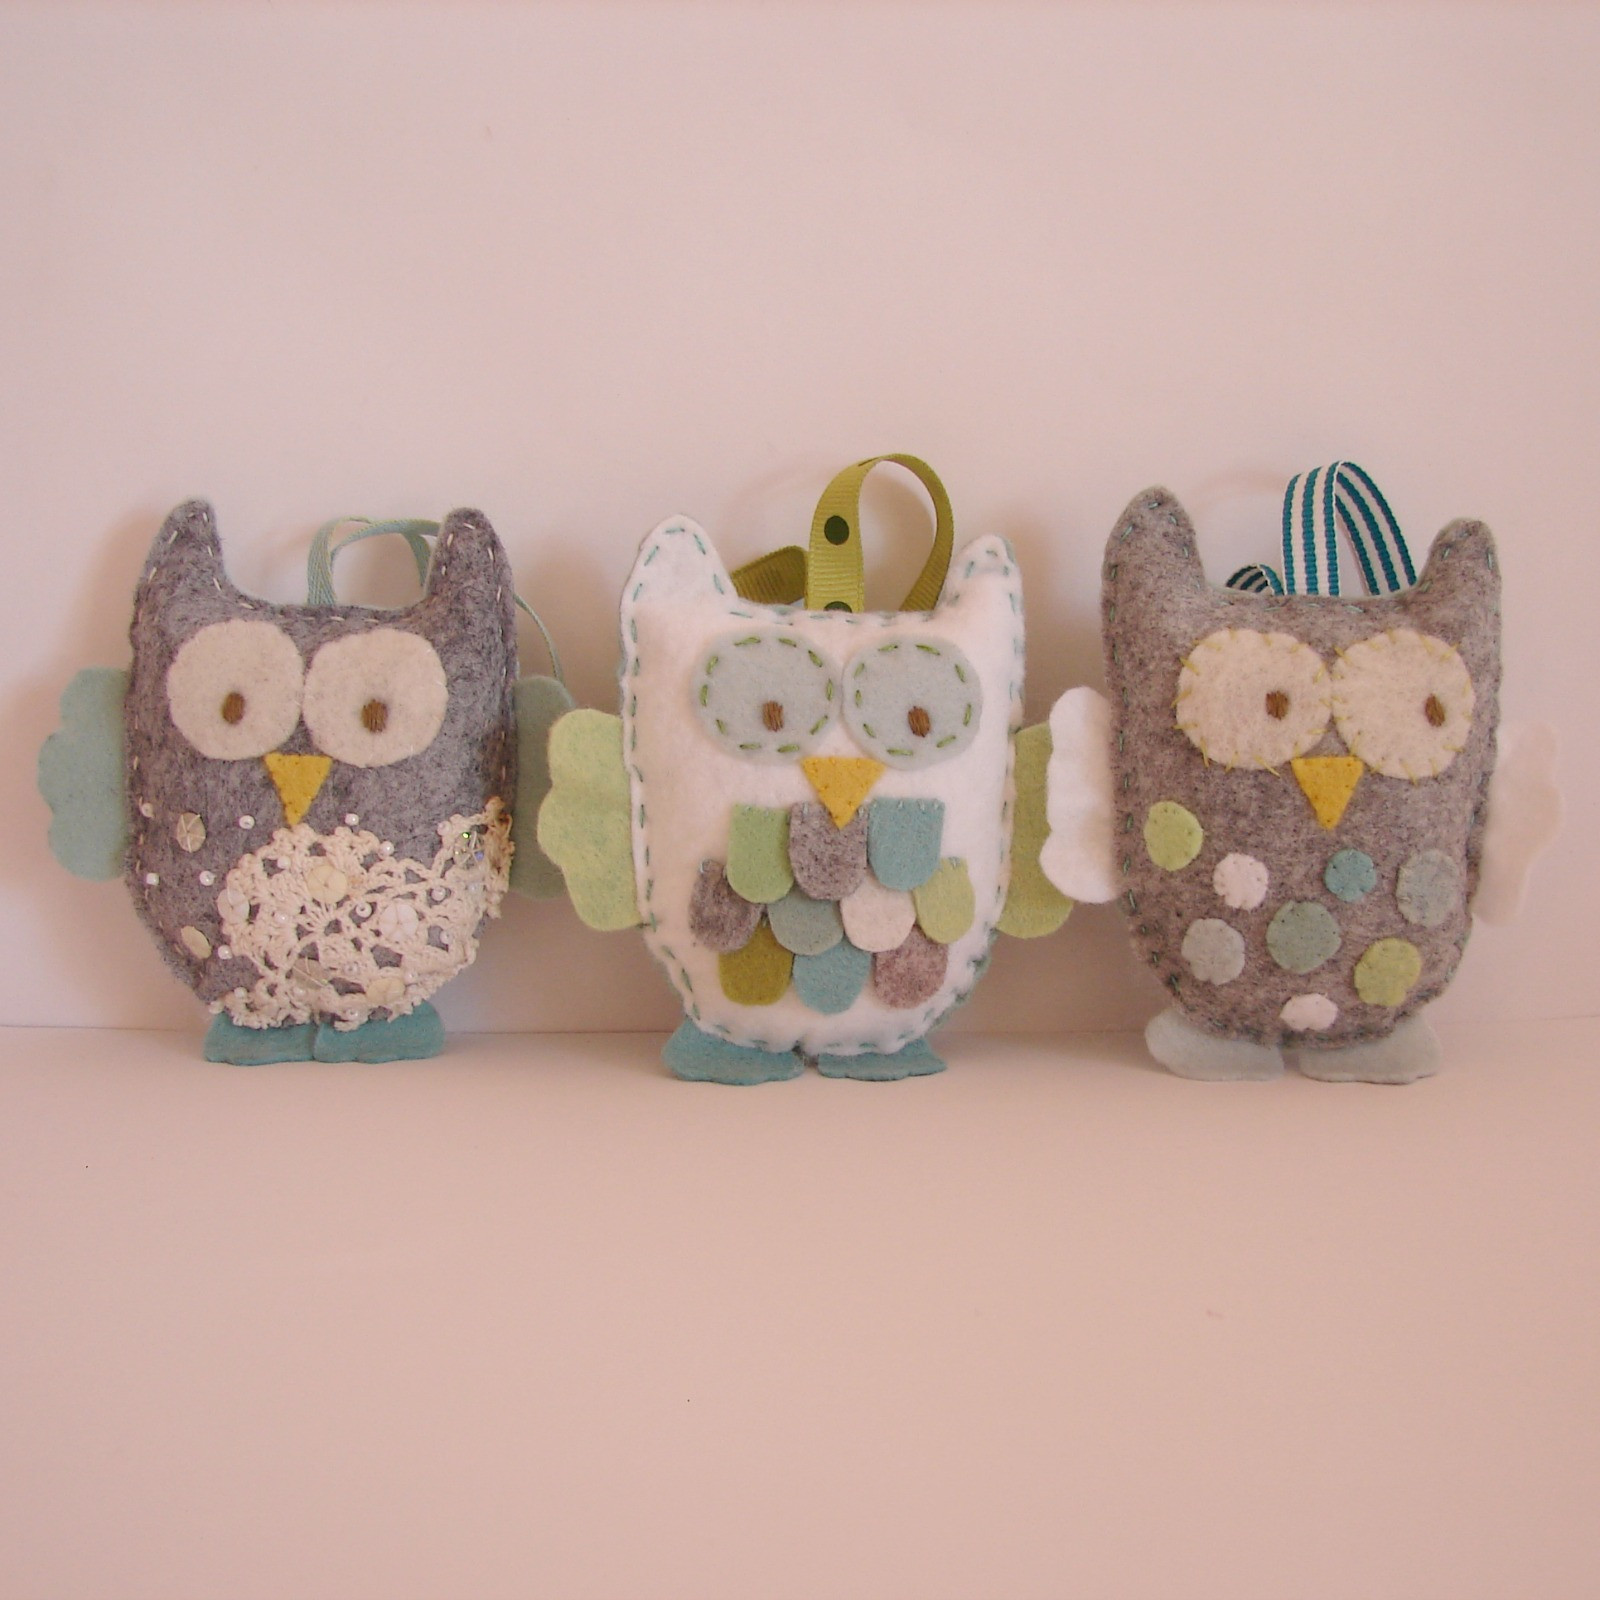 Owl Christmas ornaments Best Of Roxy Creations Super Sweet Hootie Owl ornaments Of Contemporary 45 Pictures Owl Christmas ornaments